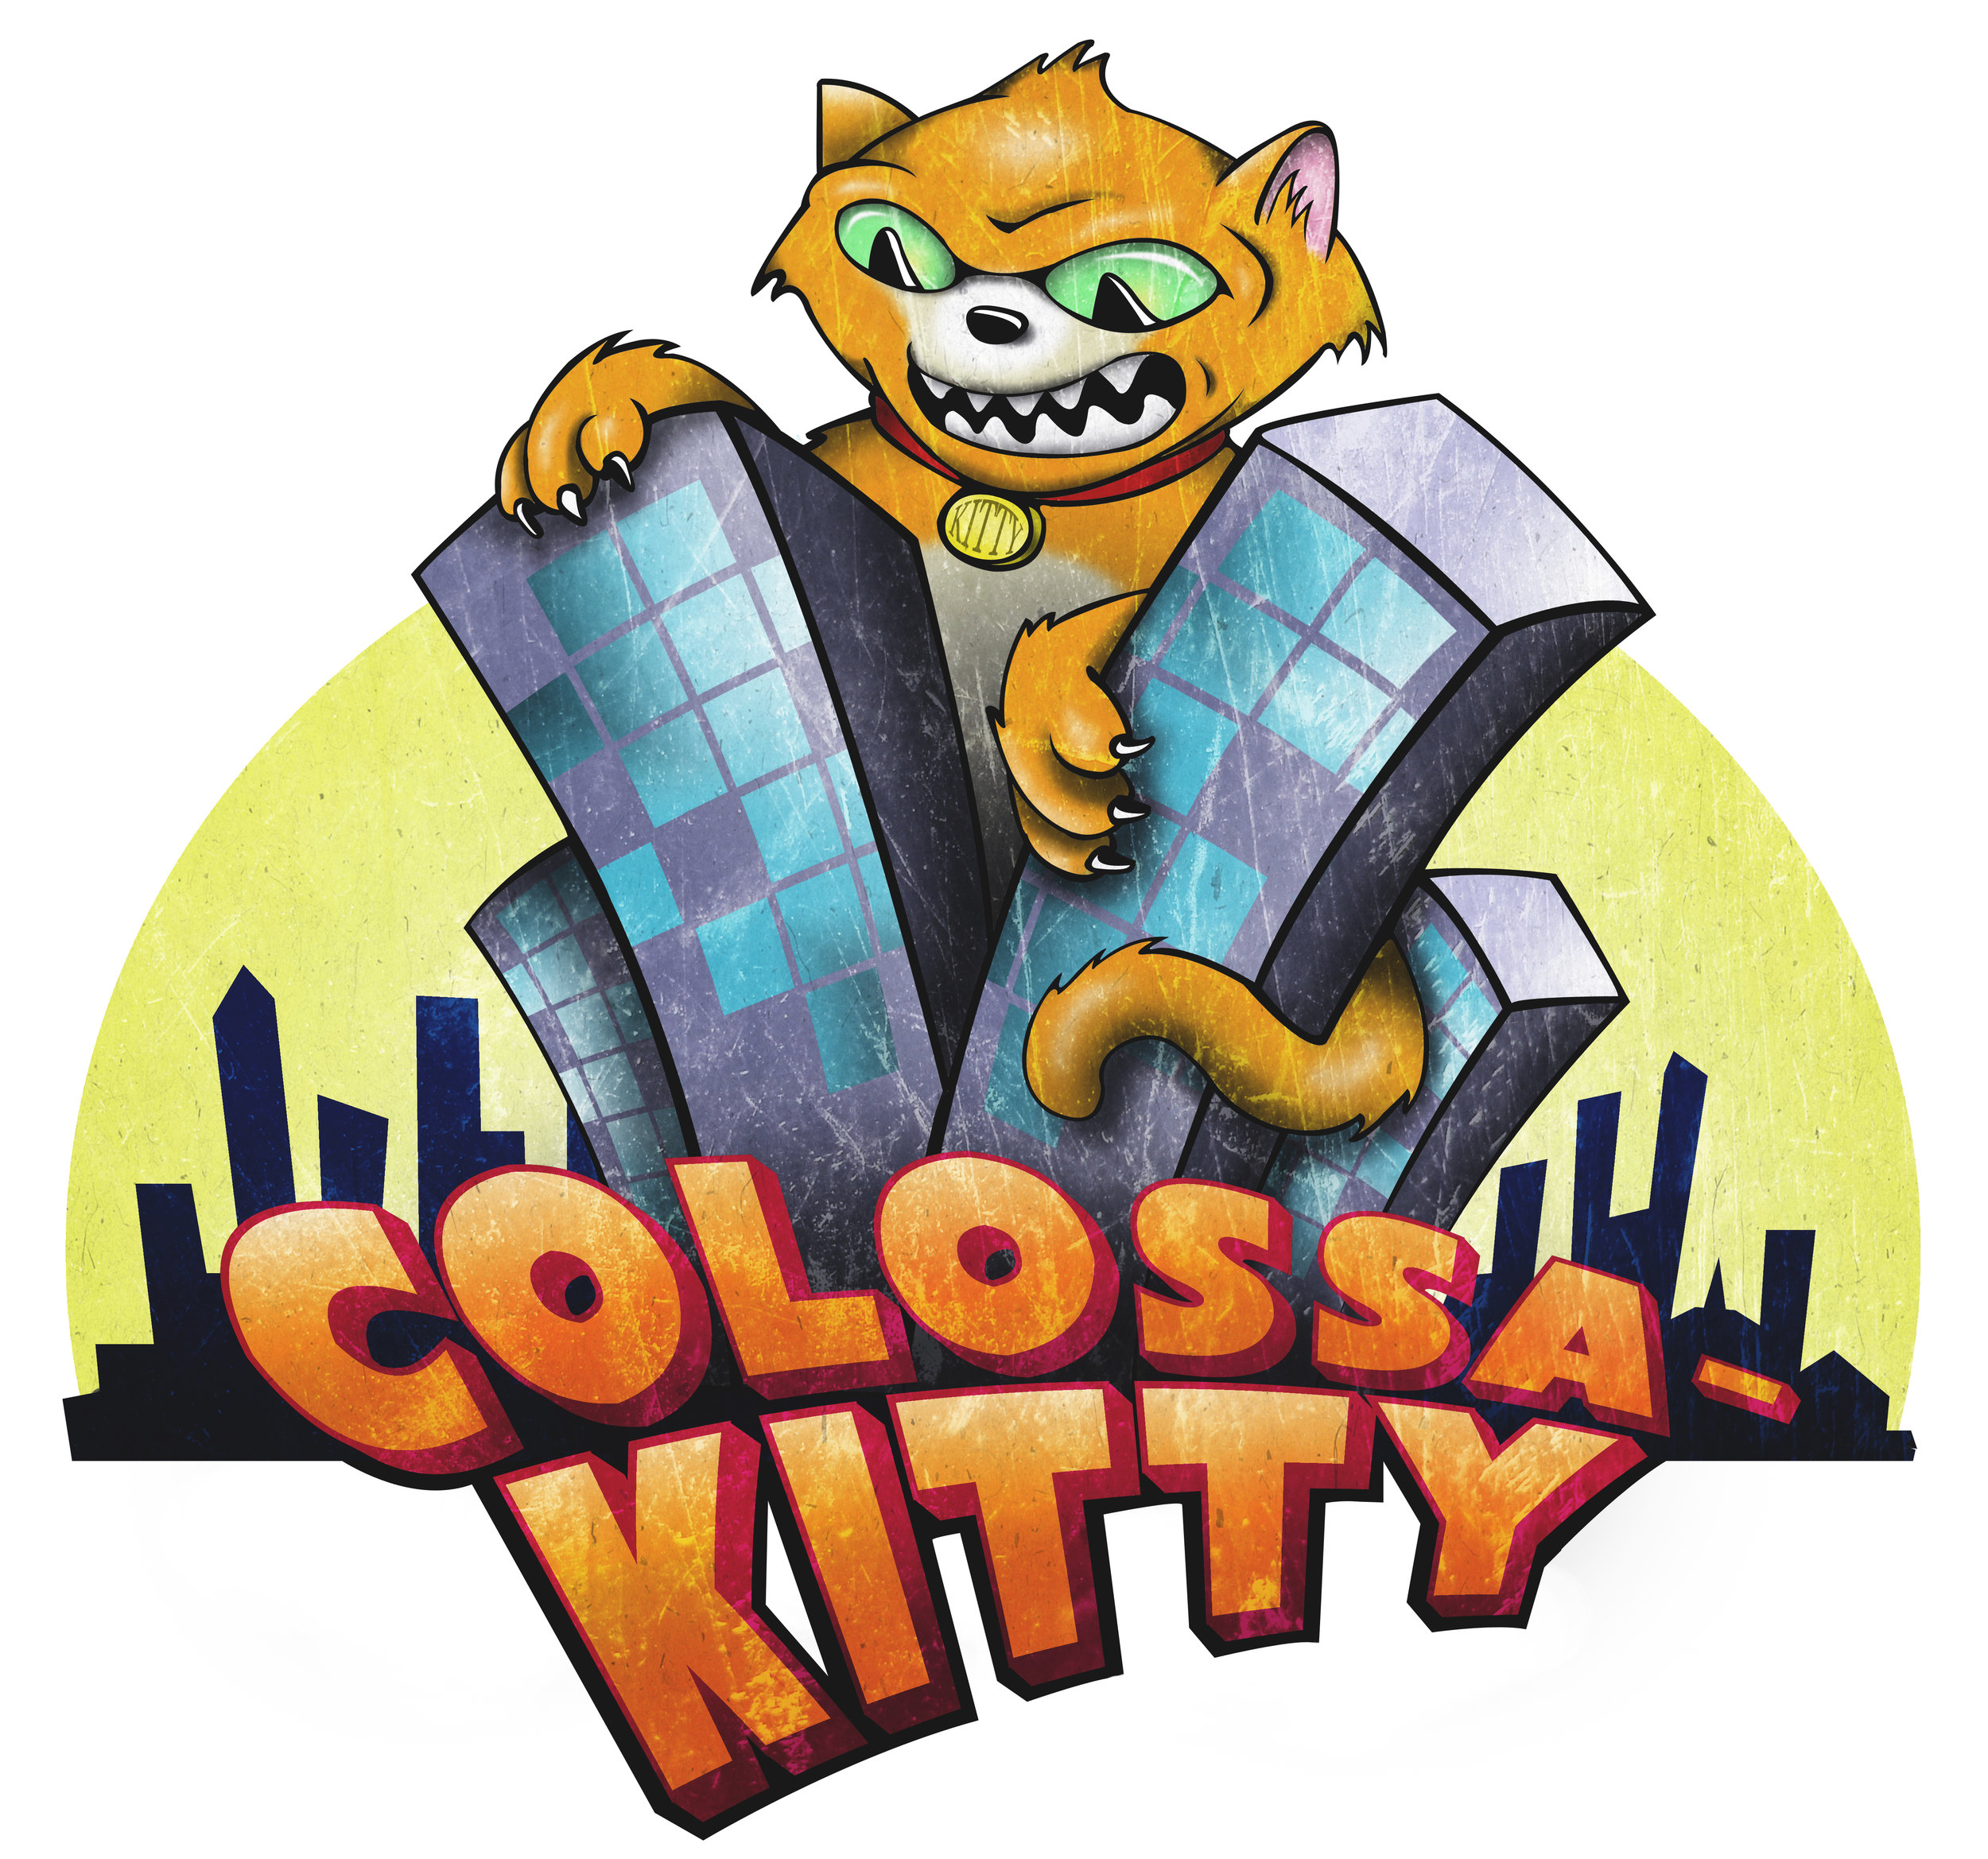 Colossa-Kitty